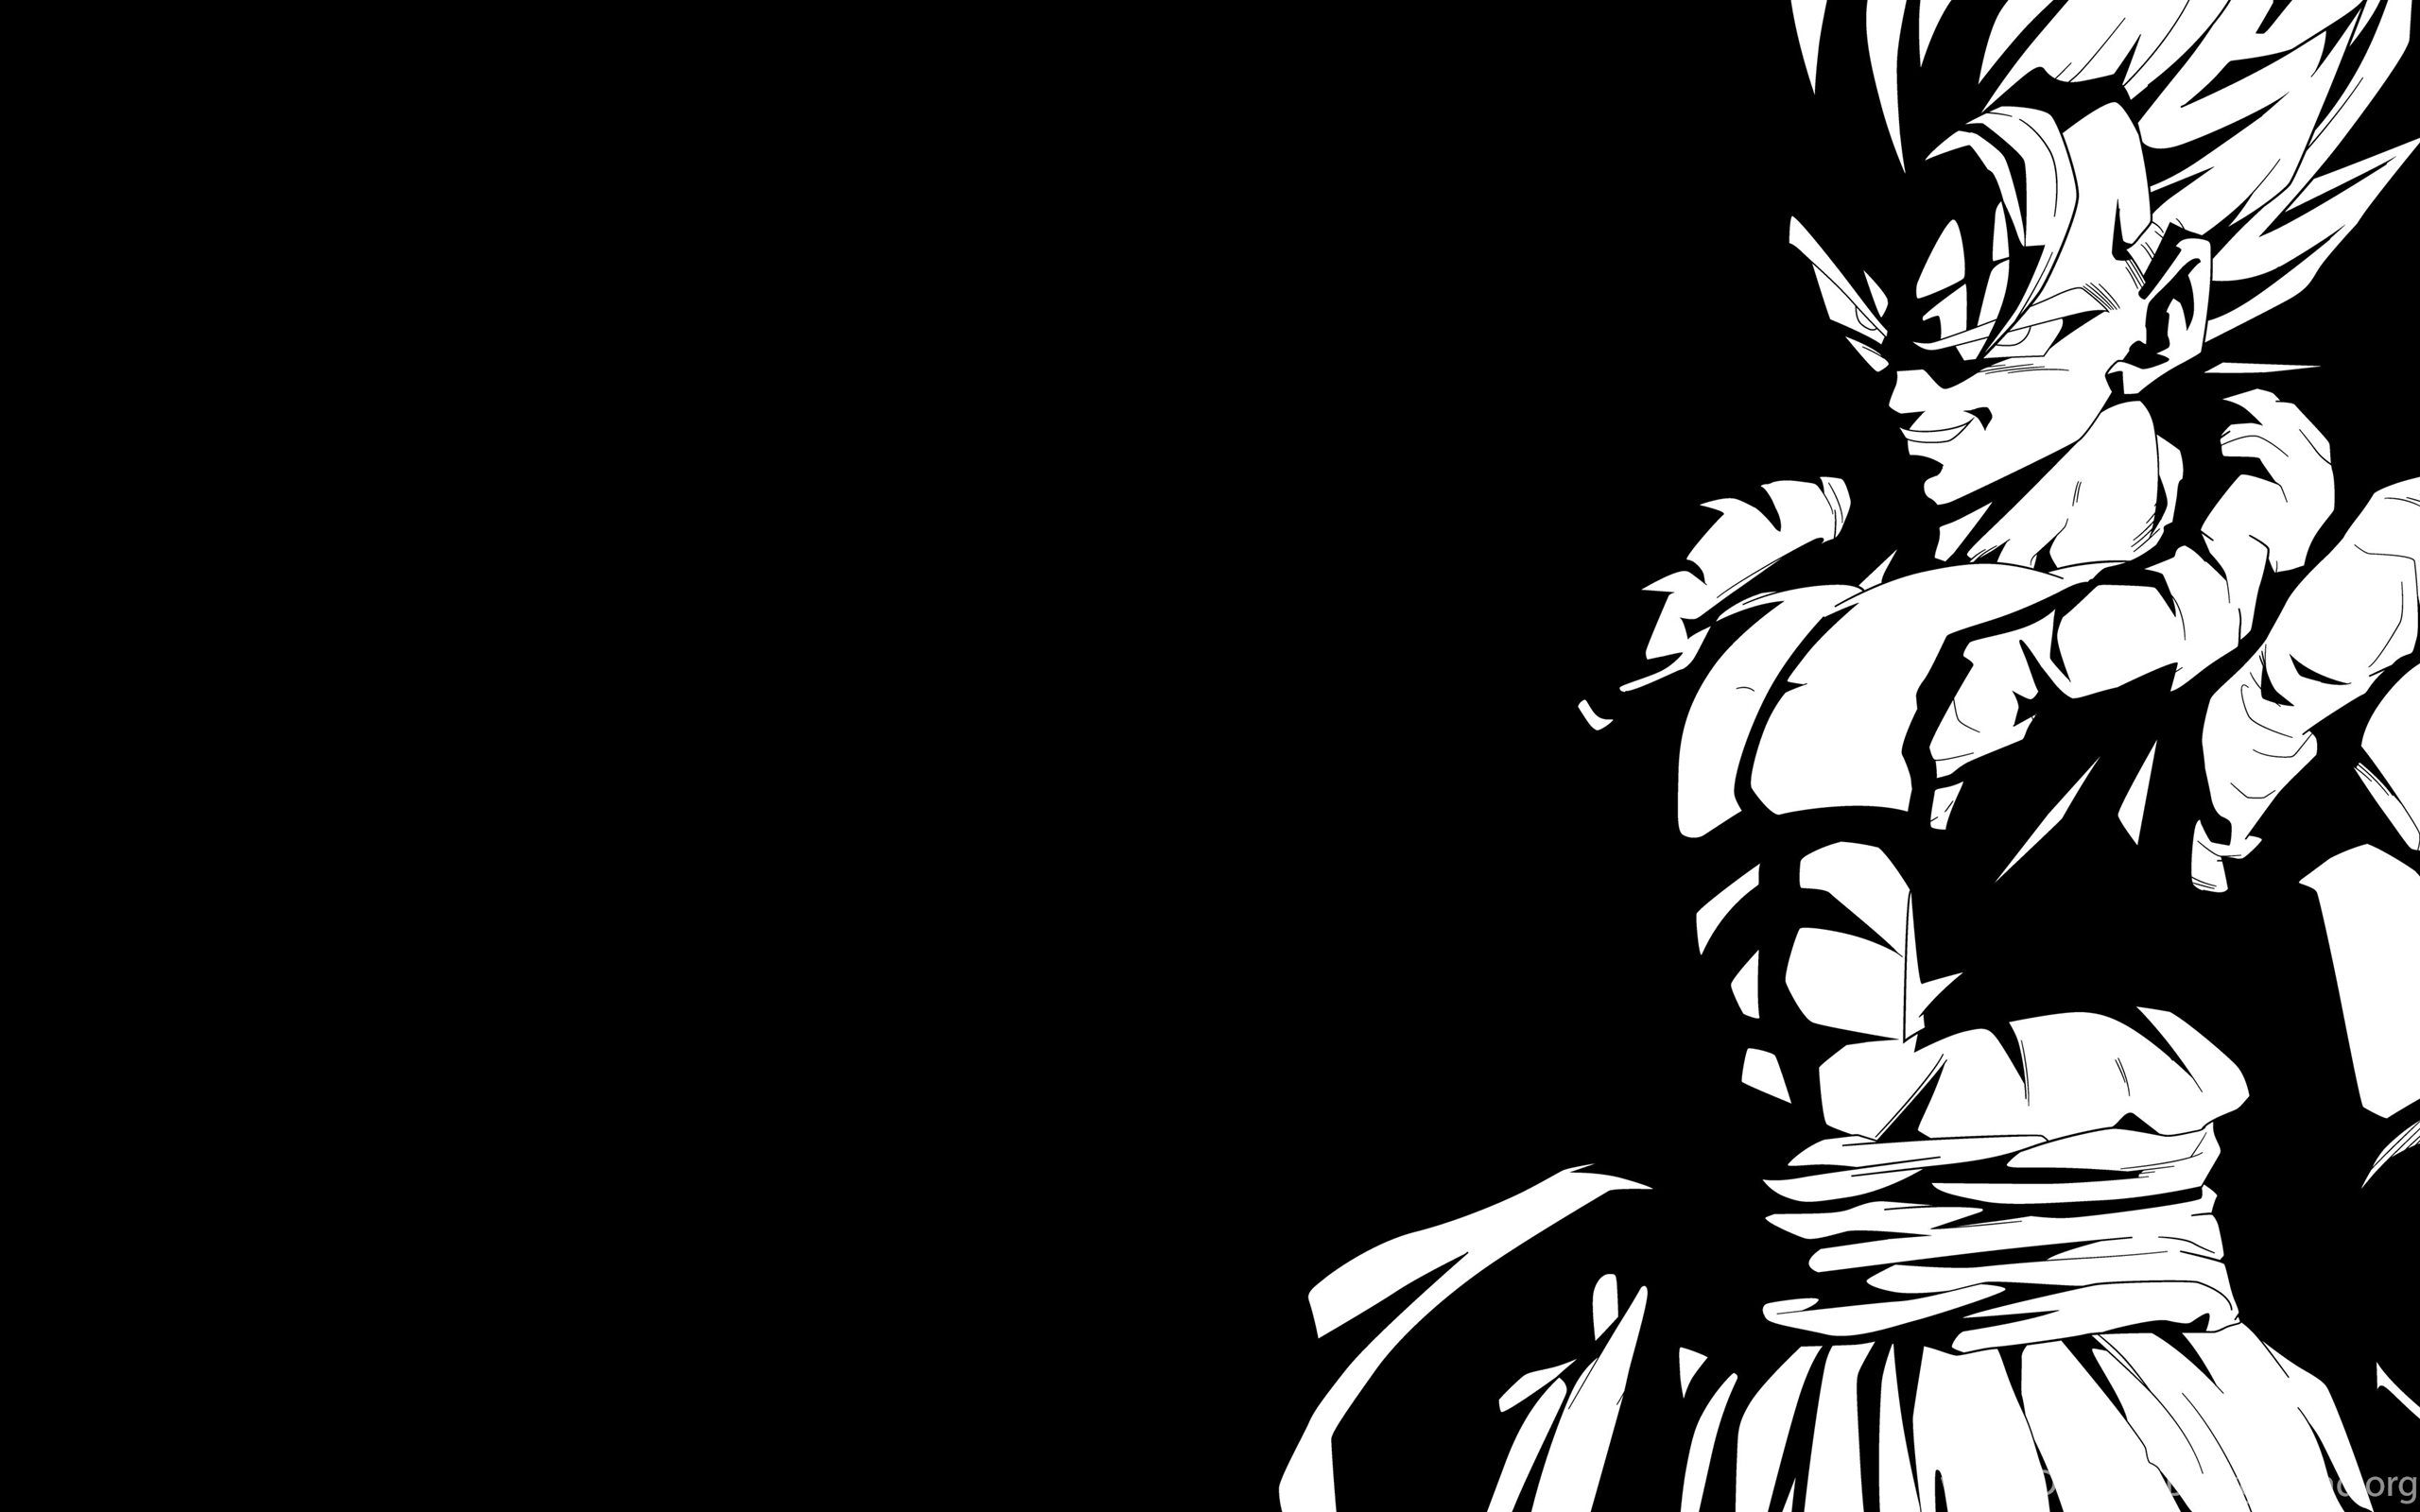 4k Wallpaper Wallpaper By Gstblack: Super Gogeta Black And White 4K Wallpapers By